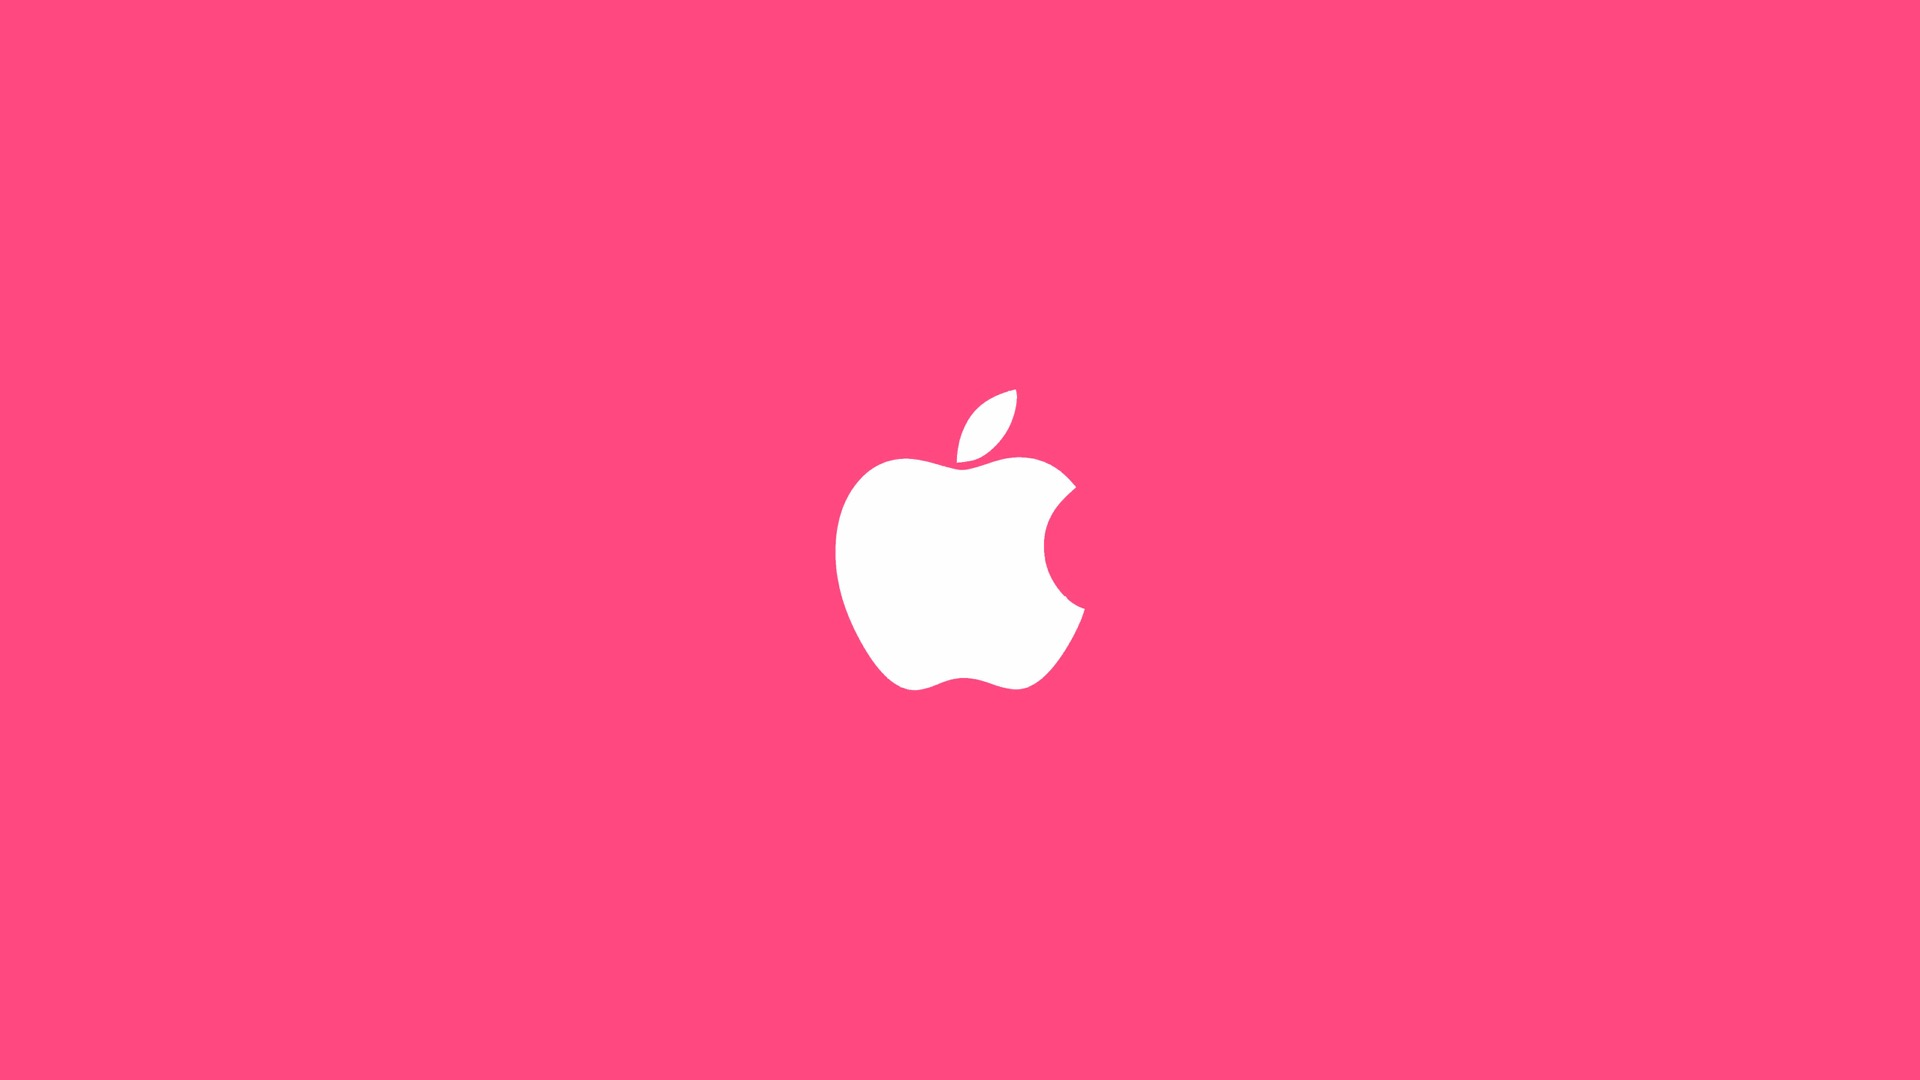 Apple Logo Pink Wallpapersc Desktop